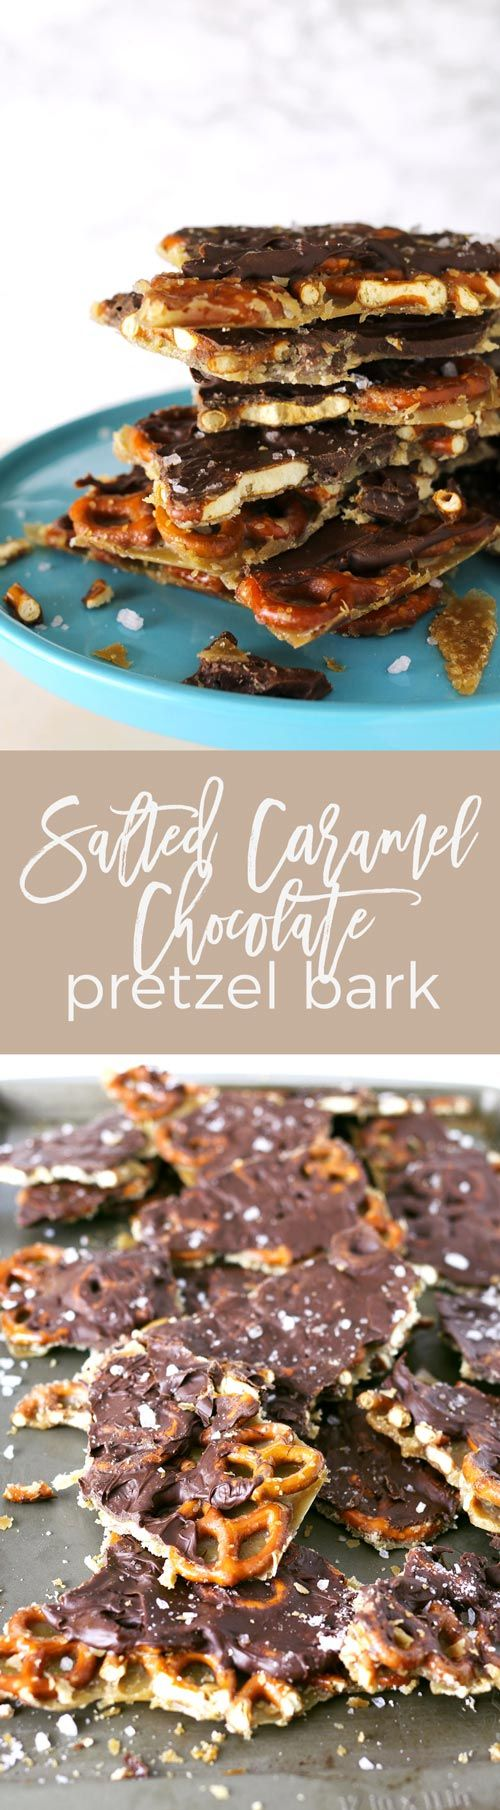 Salted caramel chocolate pretzel bark is the treat that keeps on giving. It's great for the holidays, either as dessert or as a gift! | honeyandbirch.com